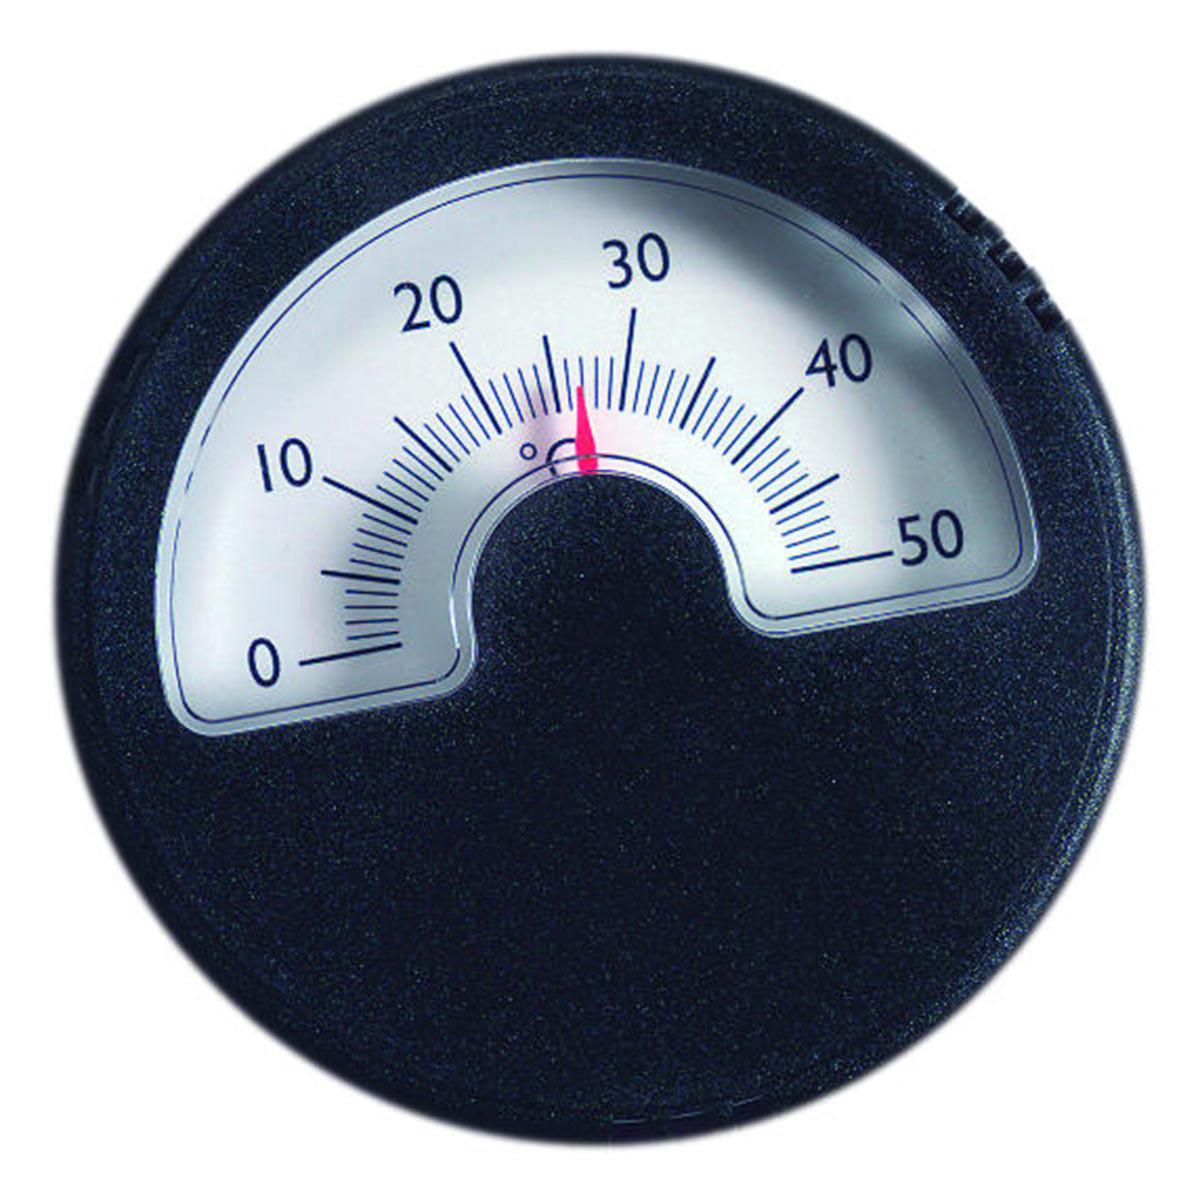 16-1003-01-analoges-innen-aussen-thermometer-1200x1200px.jpg